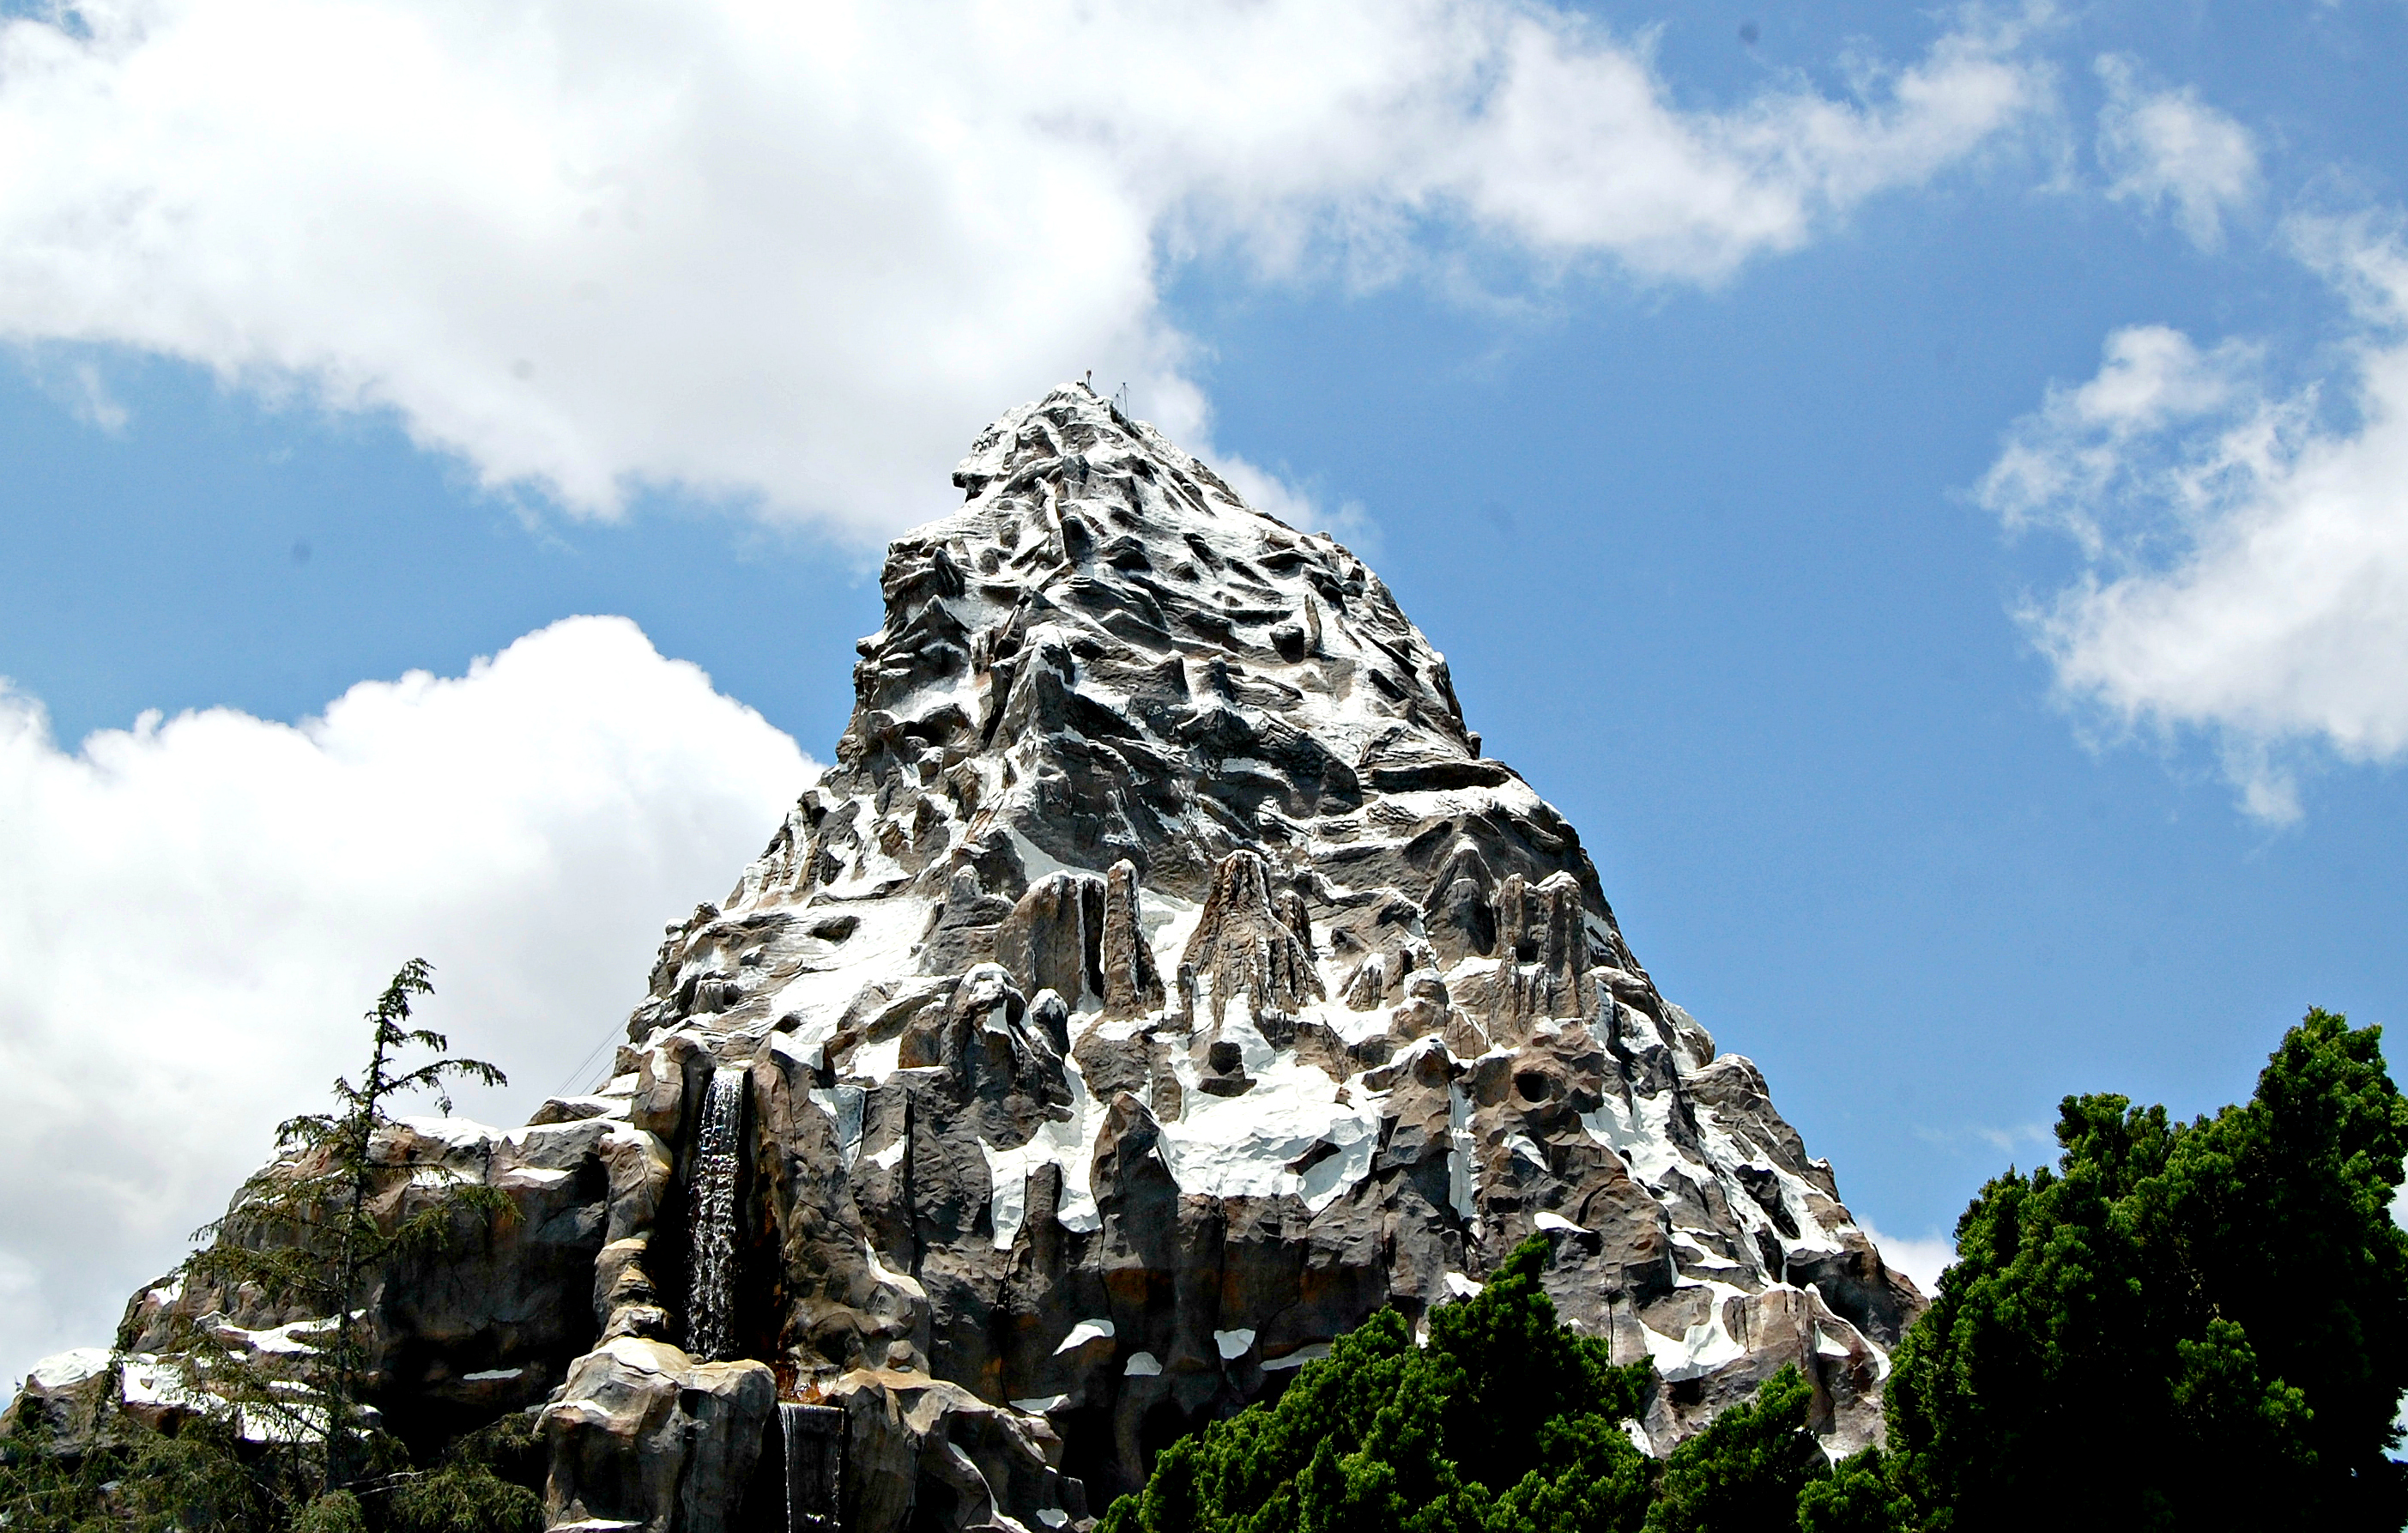 The Matterhorn, Disneyland, California